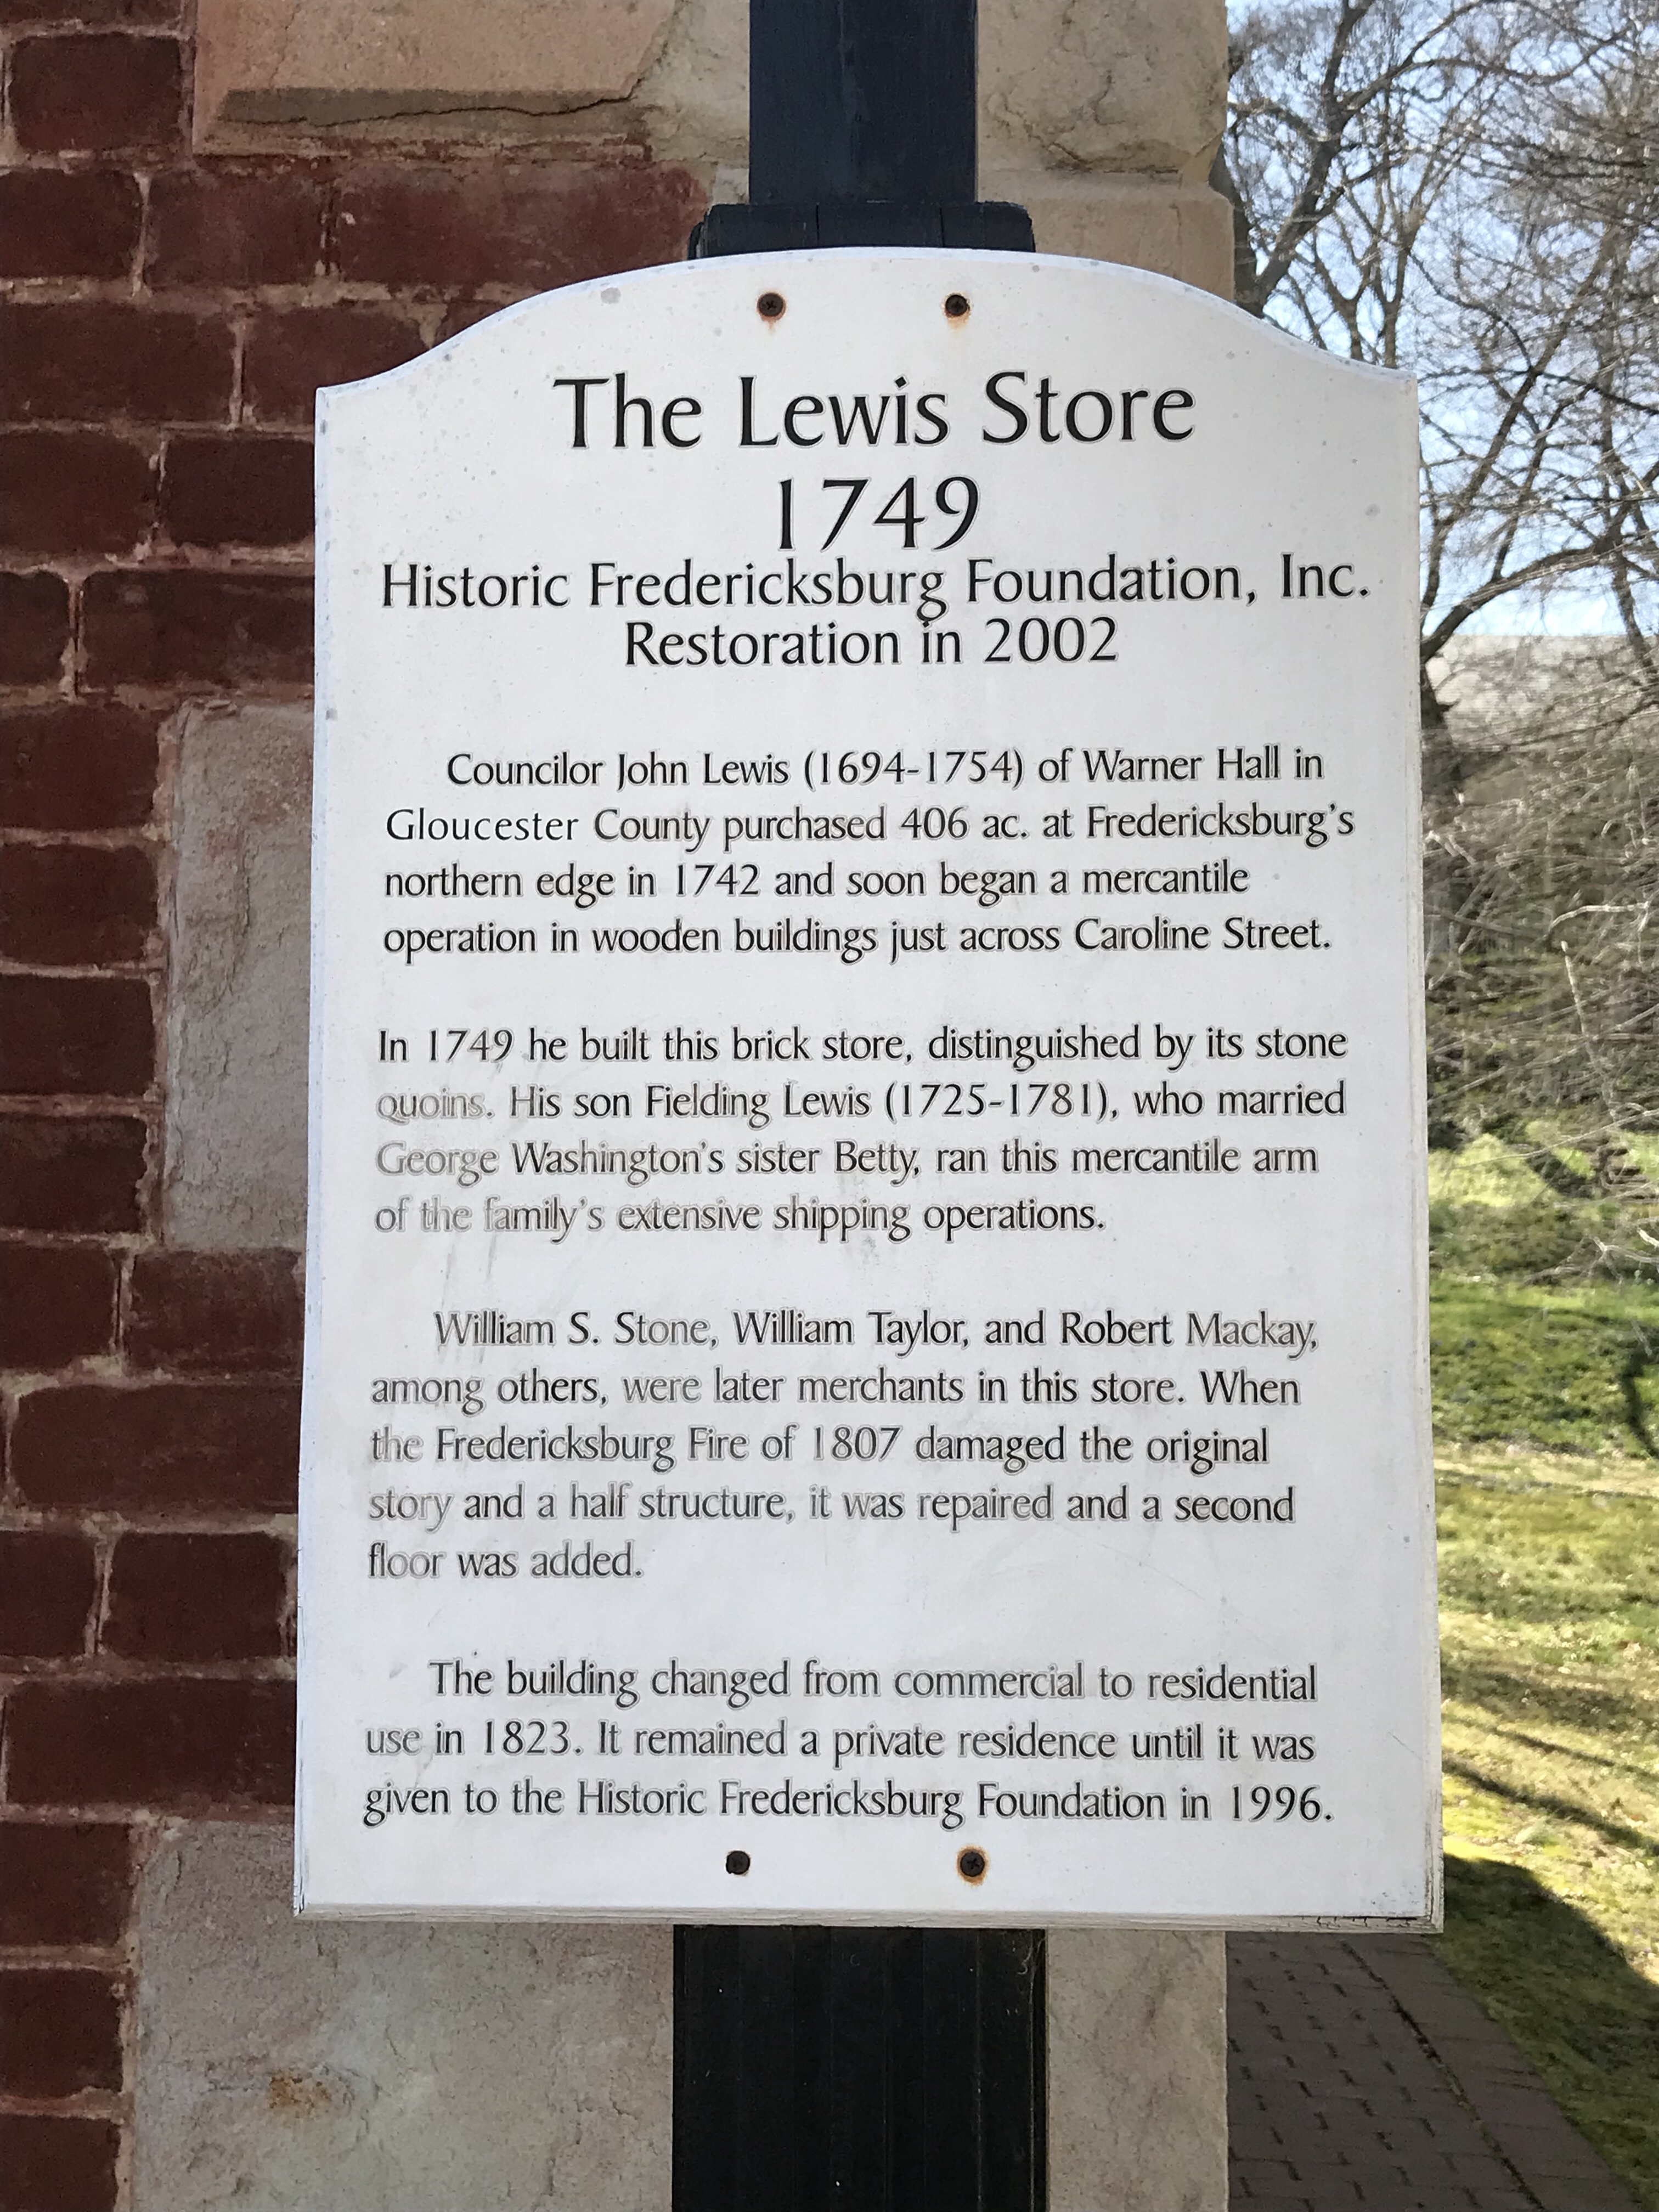 Picture of the sign outside of the Lewis Store